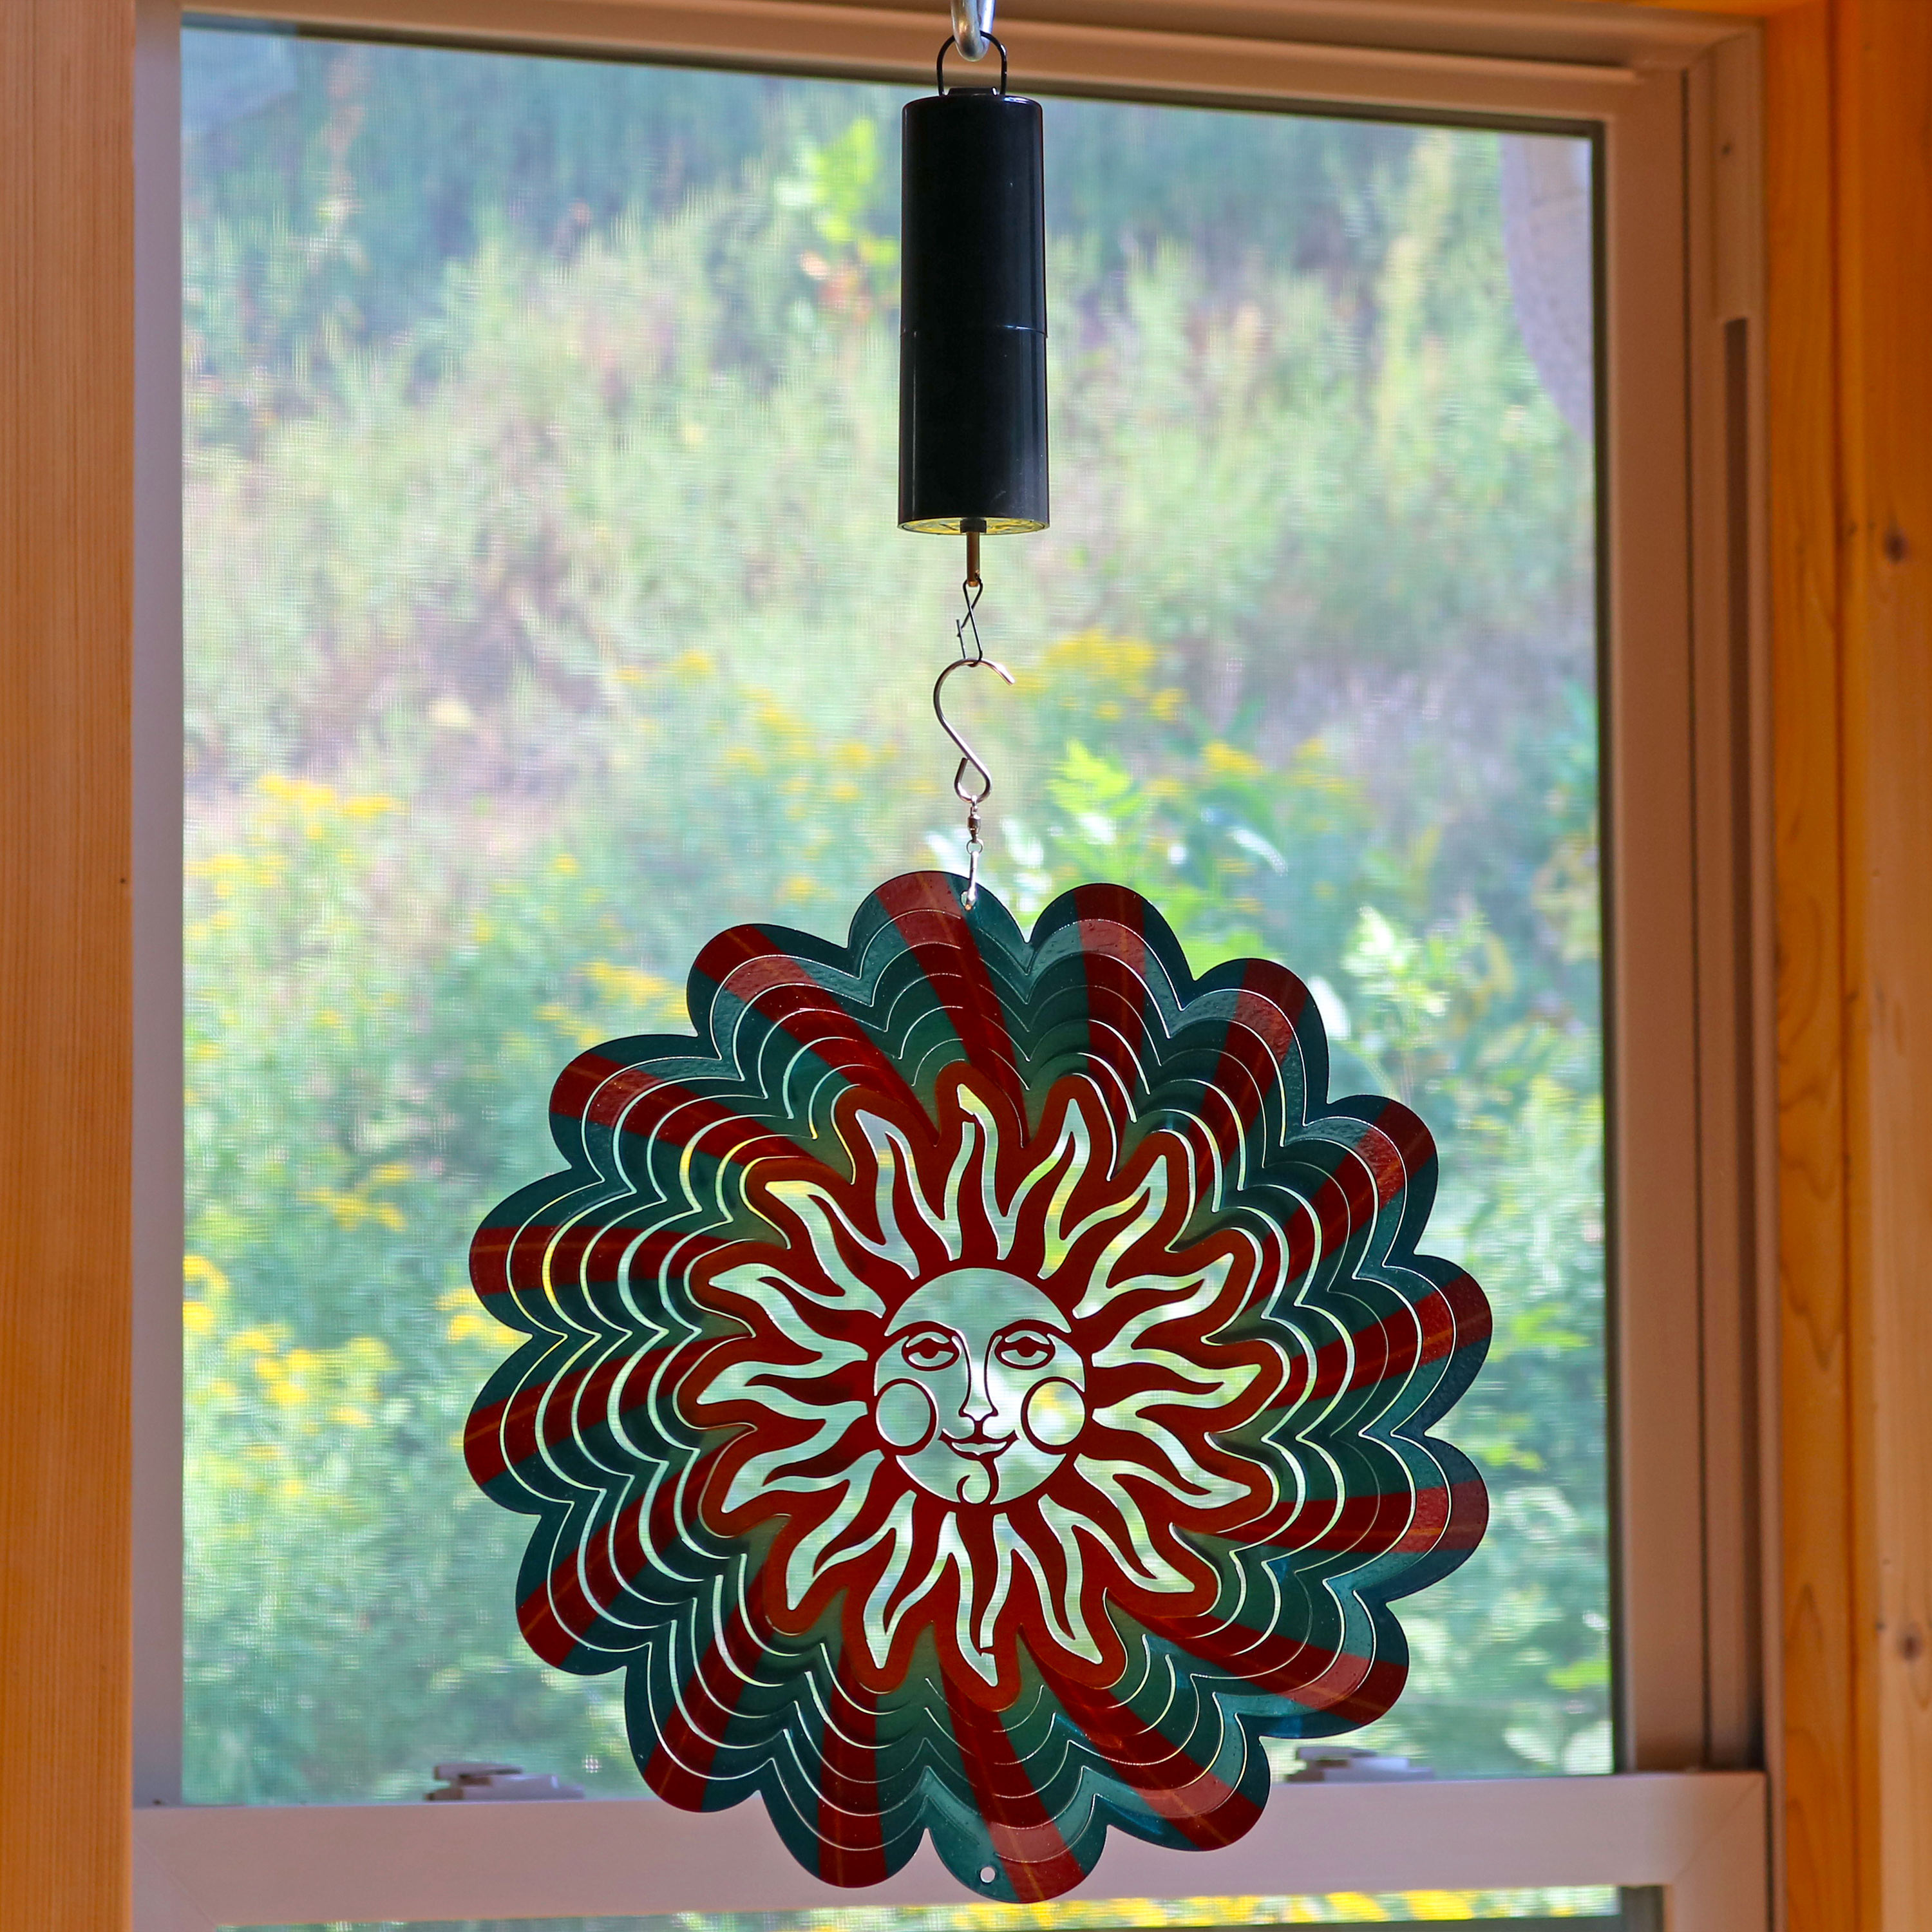 Sunnydaze 3D Multi-Color Sun Wind Spinner with Hook, 12-Inch, Yes, Battery Operated Motor